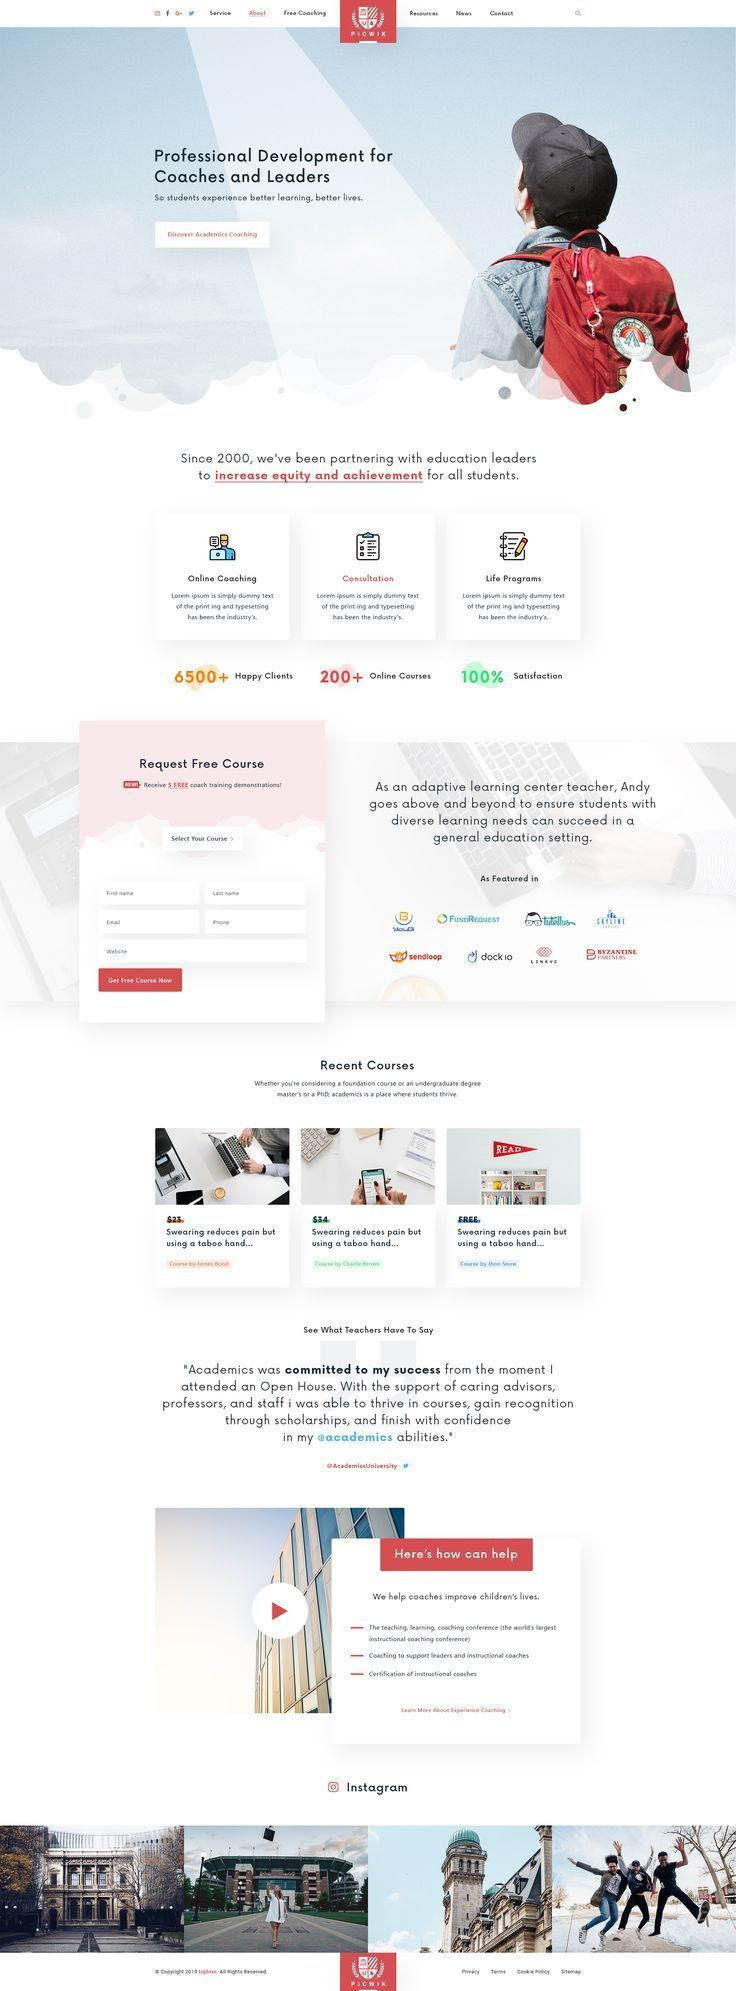 Picwik Education Landing Page For University College And School Is A Premium Psd Template Thi University Website Landing Page Inspiration Online Web Design